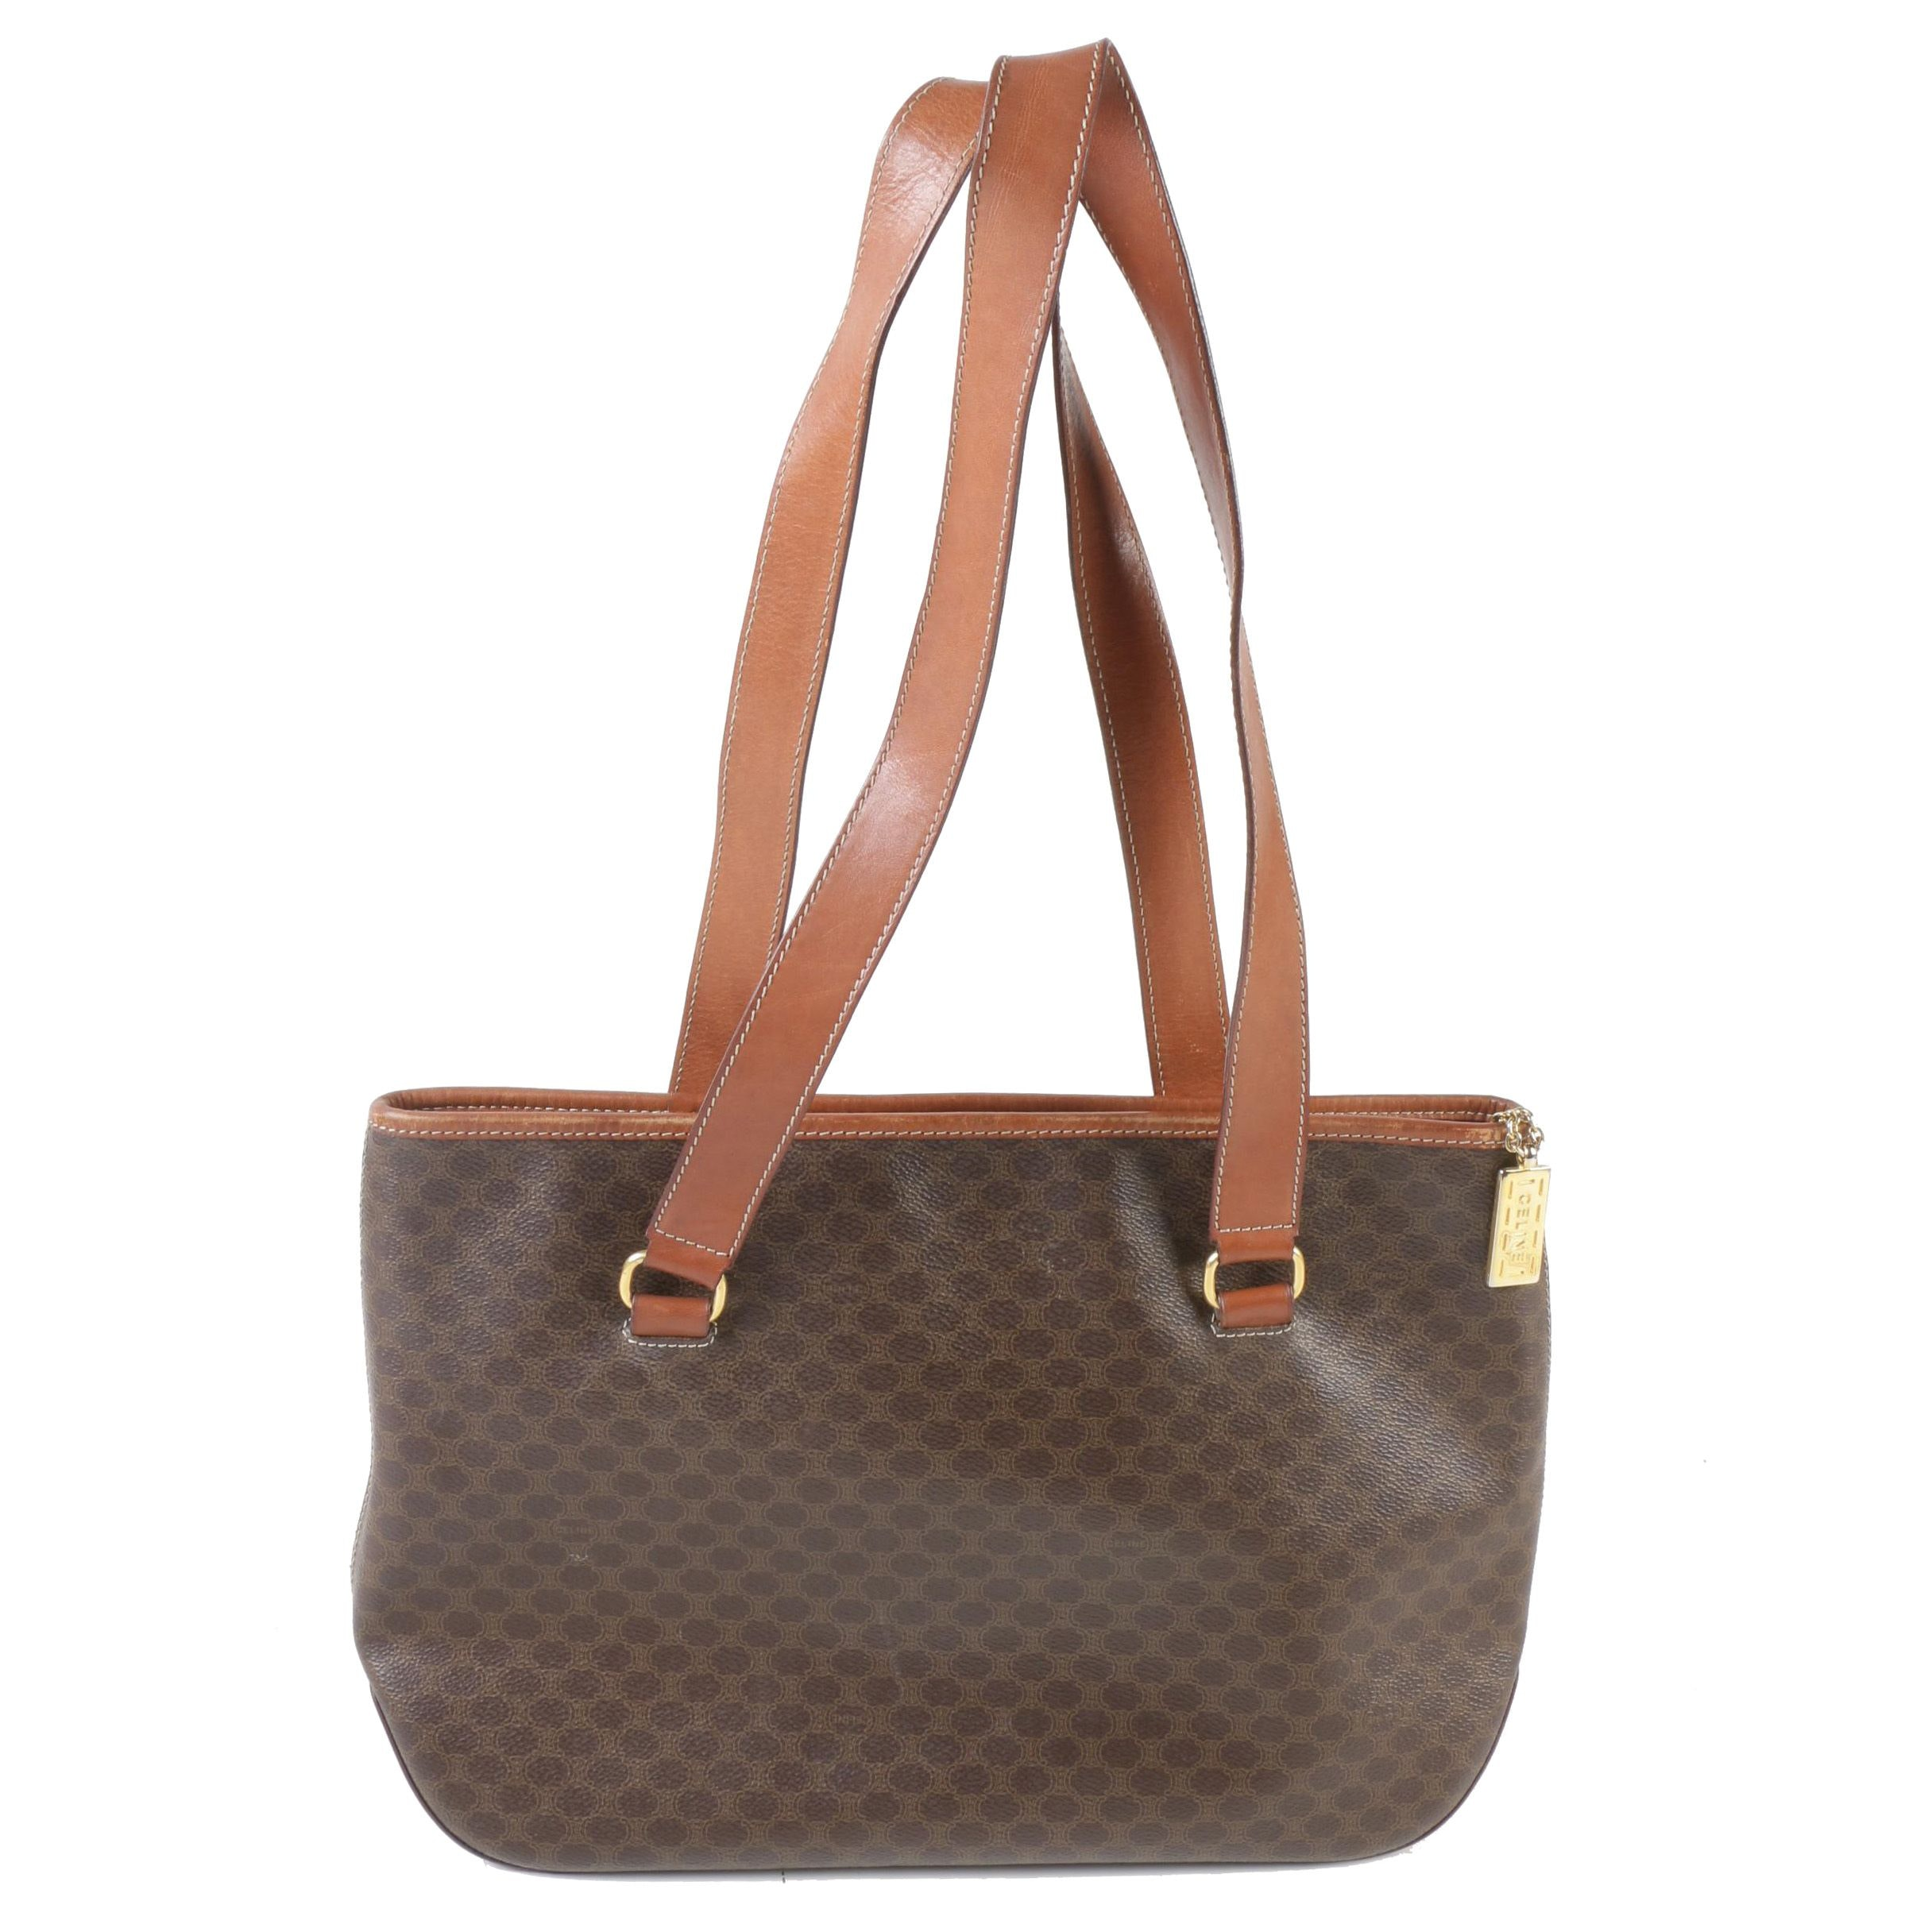 Céline Paris Macadam Canvas and Brown Leather Shoulder Bag Tote